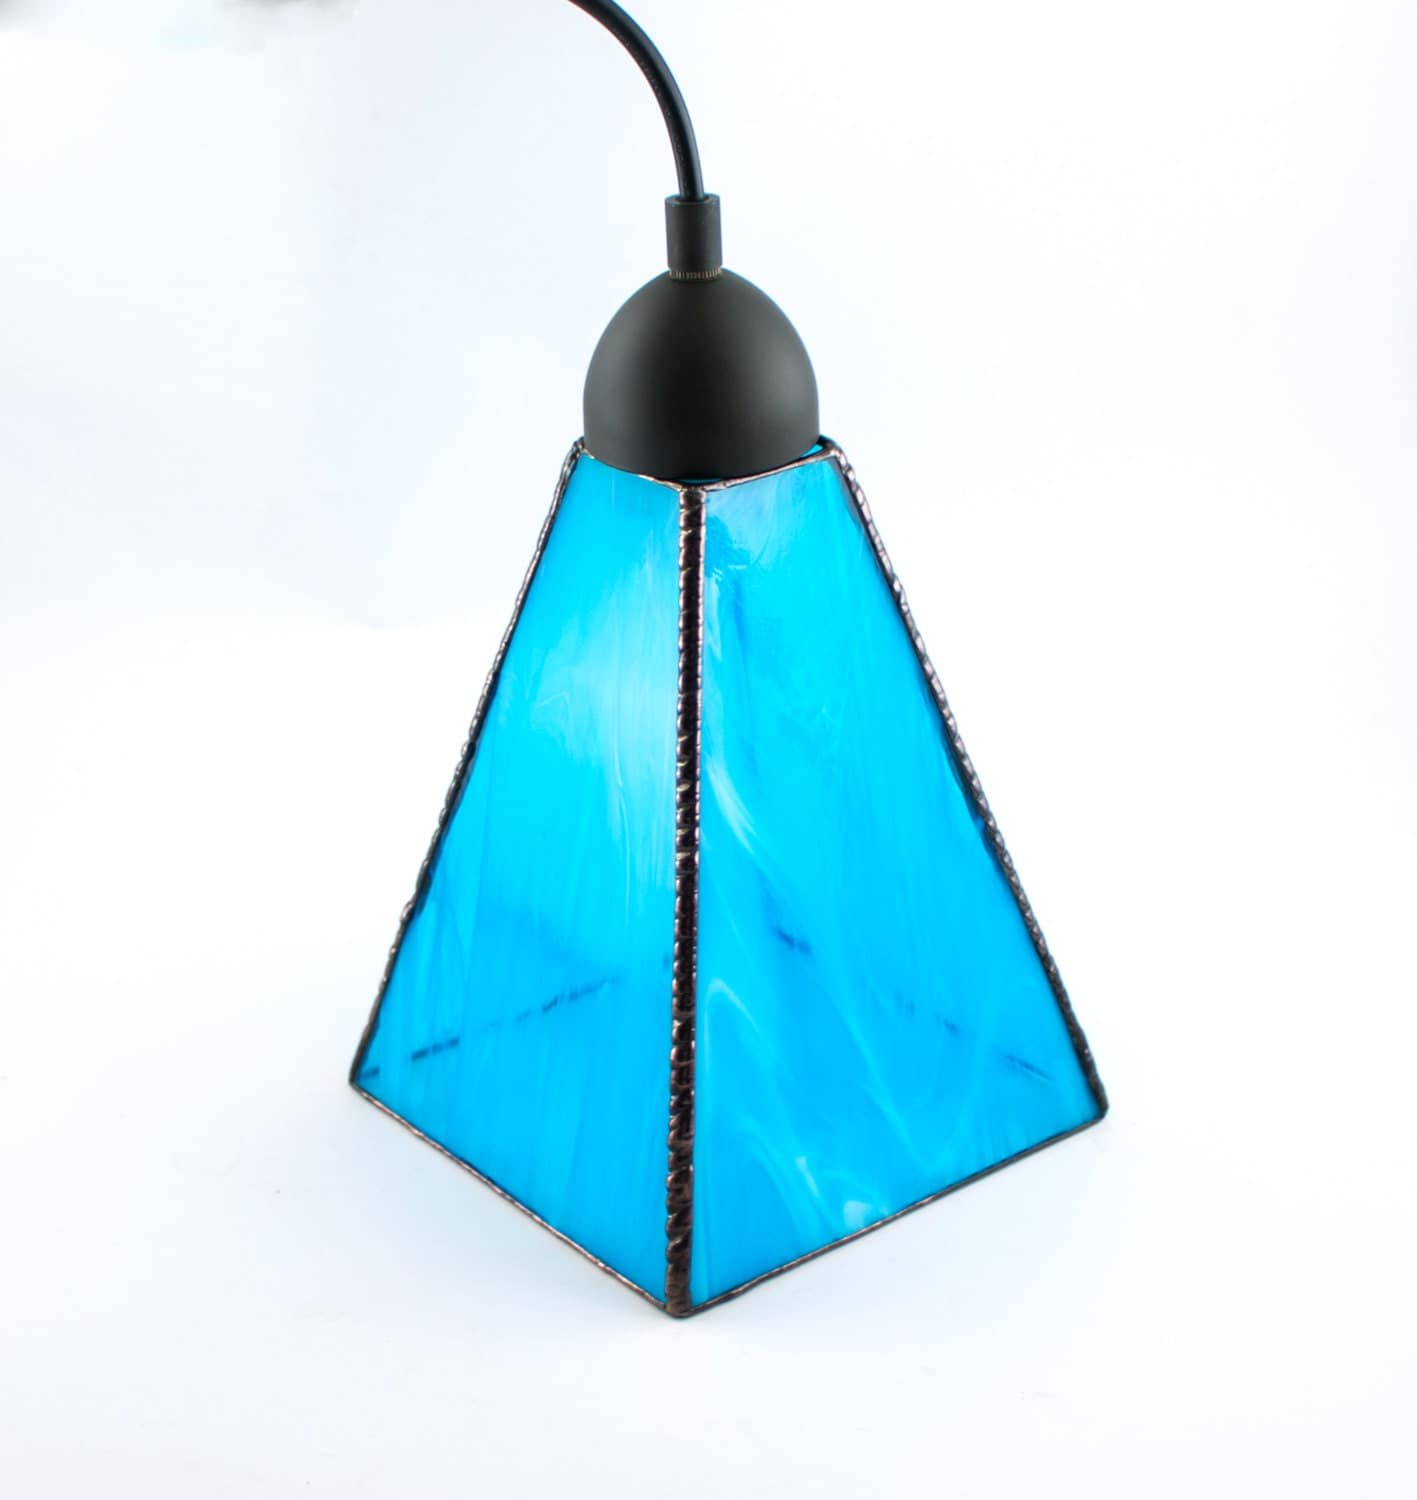 Aqua Blue Glass Pendant Lighting Unique Hanging Lamp Kitchen